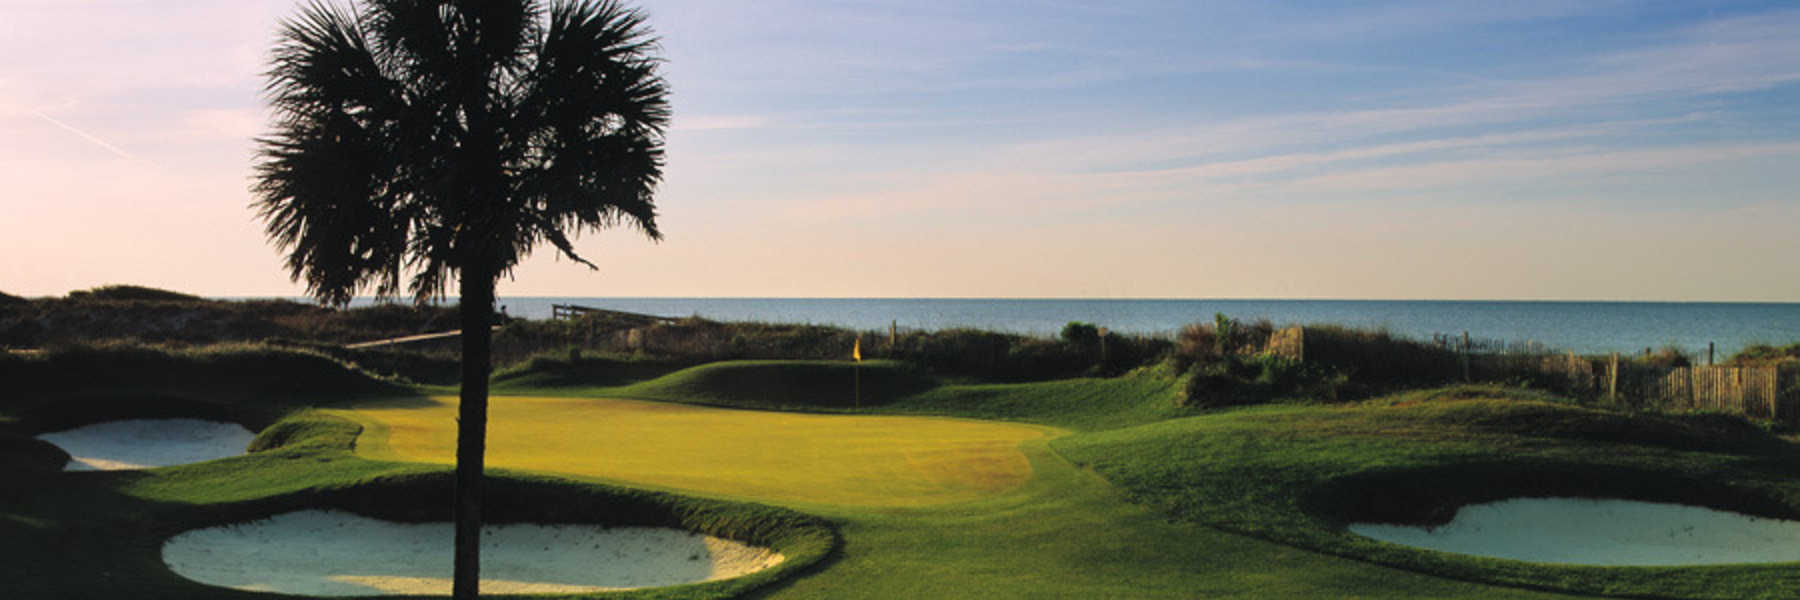 Golf Vacation Package - Kiawah Island Resort Stay and Play - starting at $299 per person, per day!